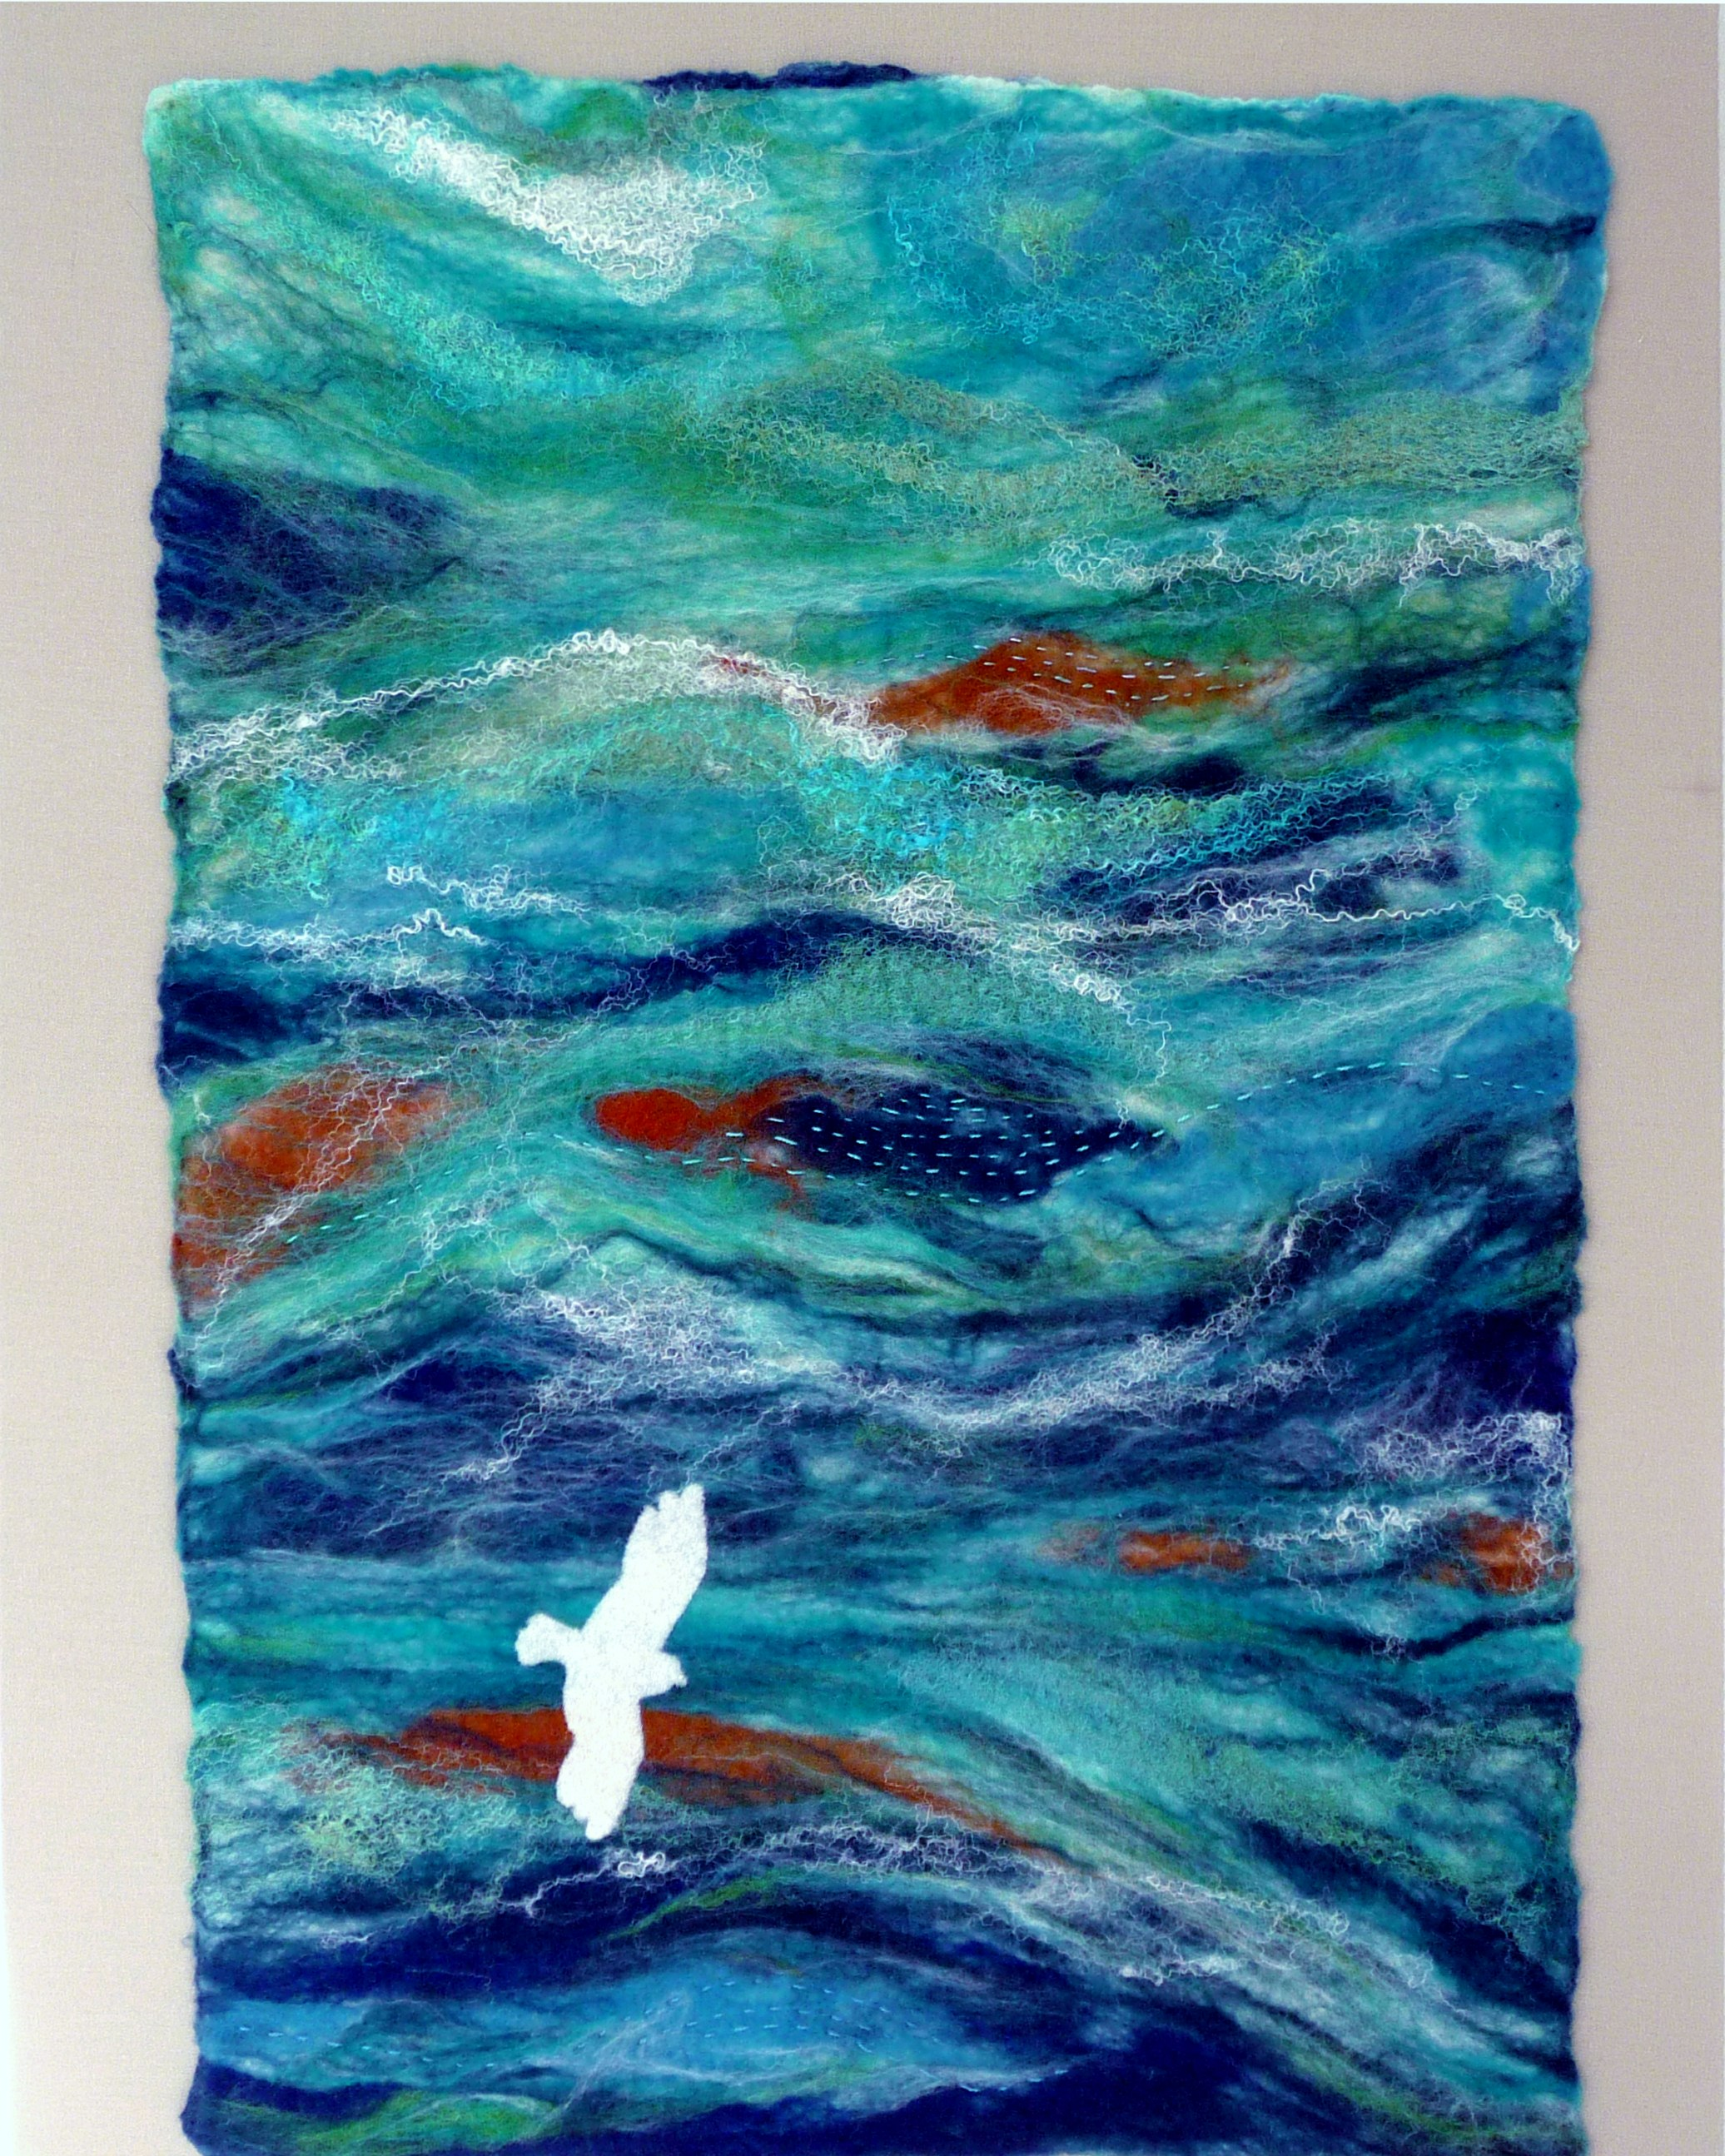 FLYING SOLO by Rosey  Paul, hand-felted textile